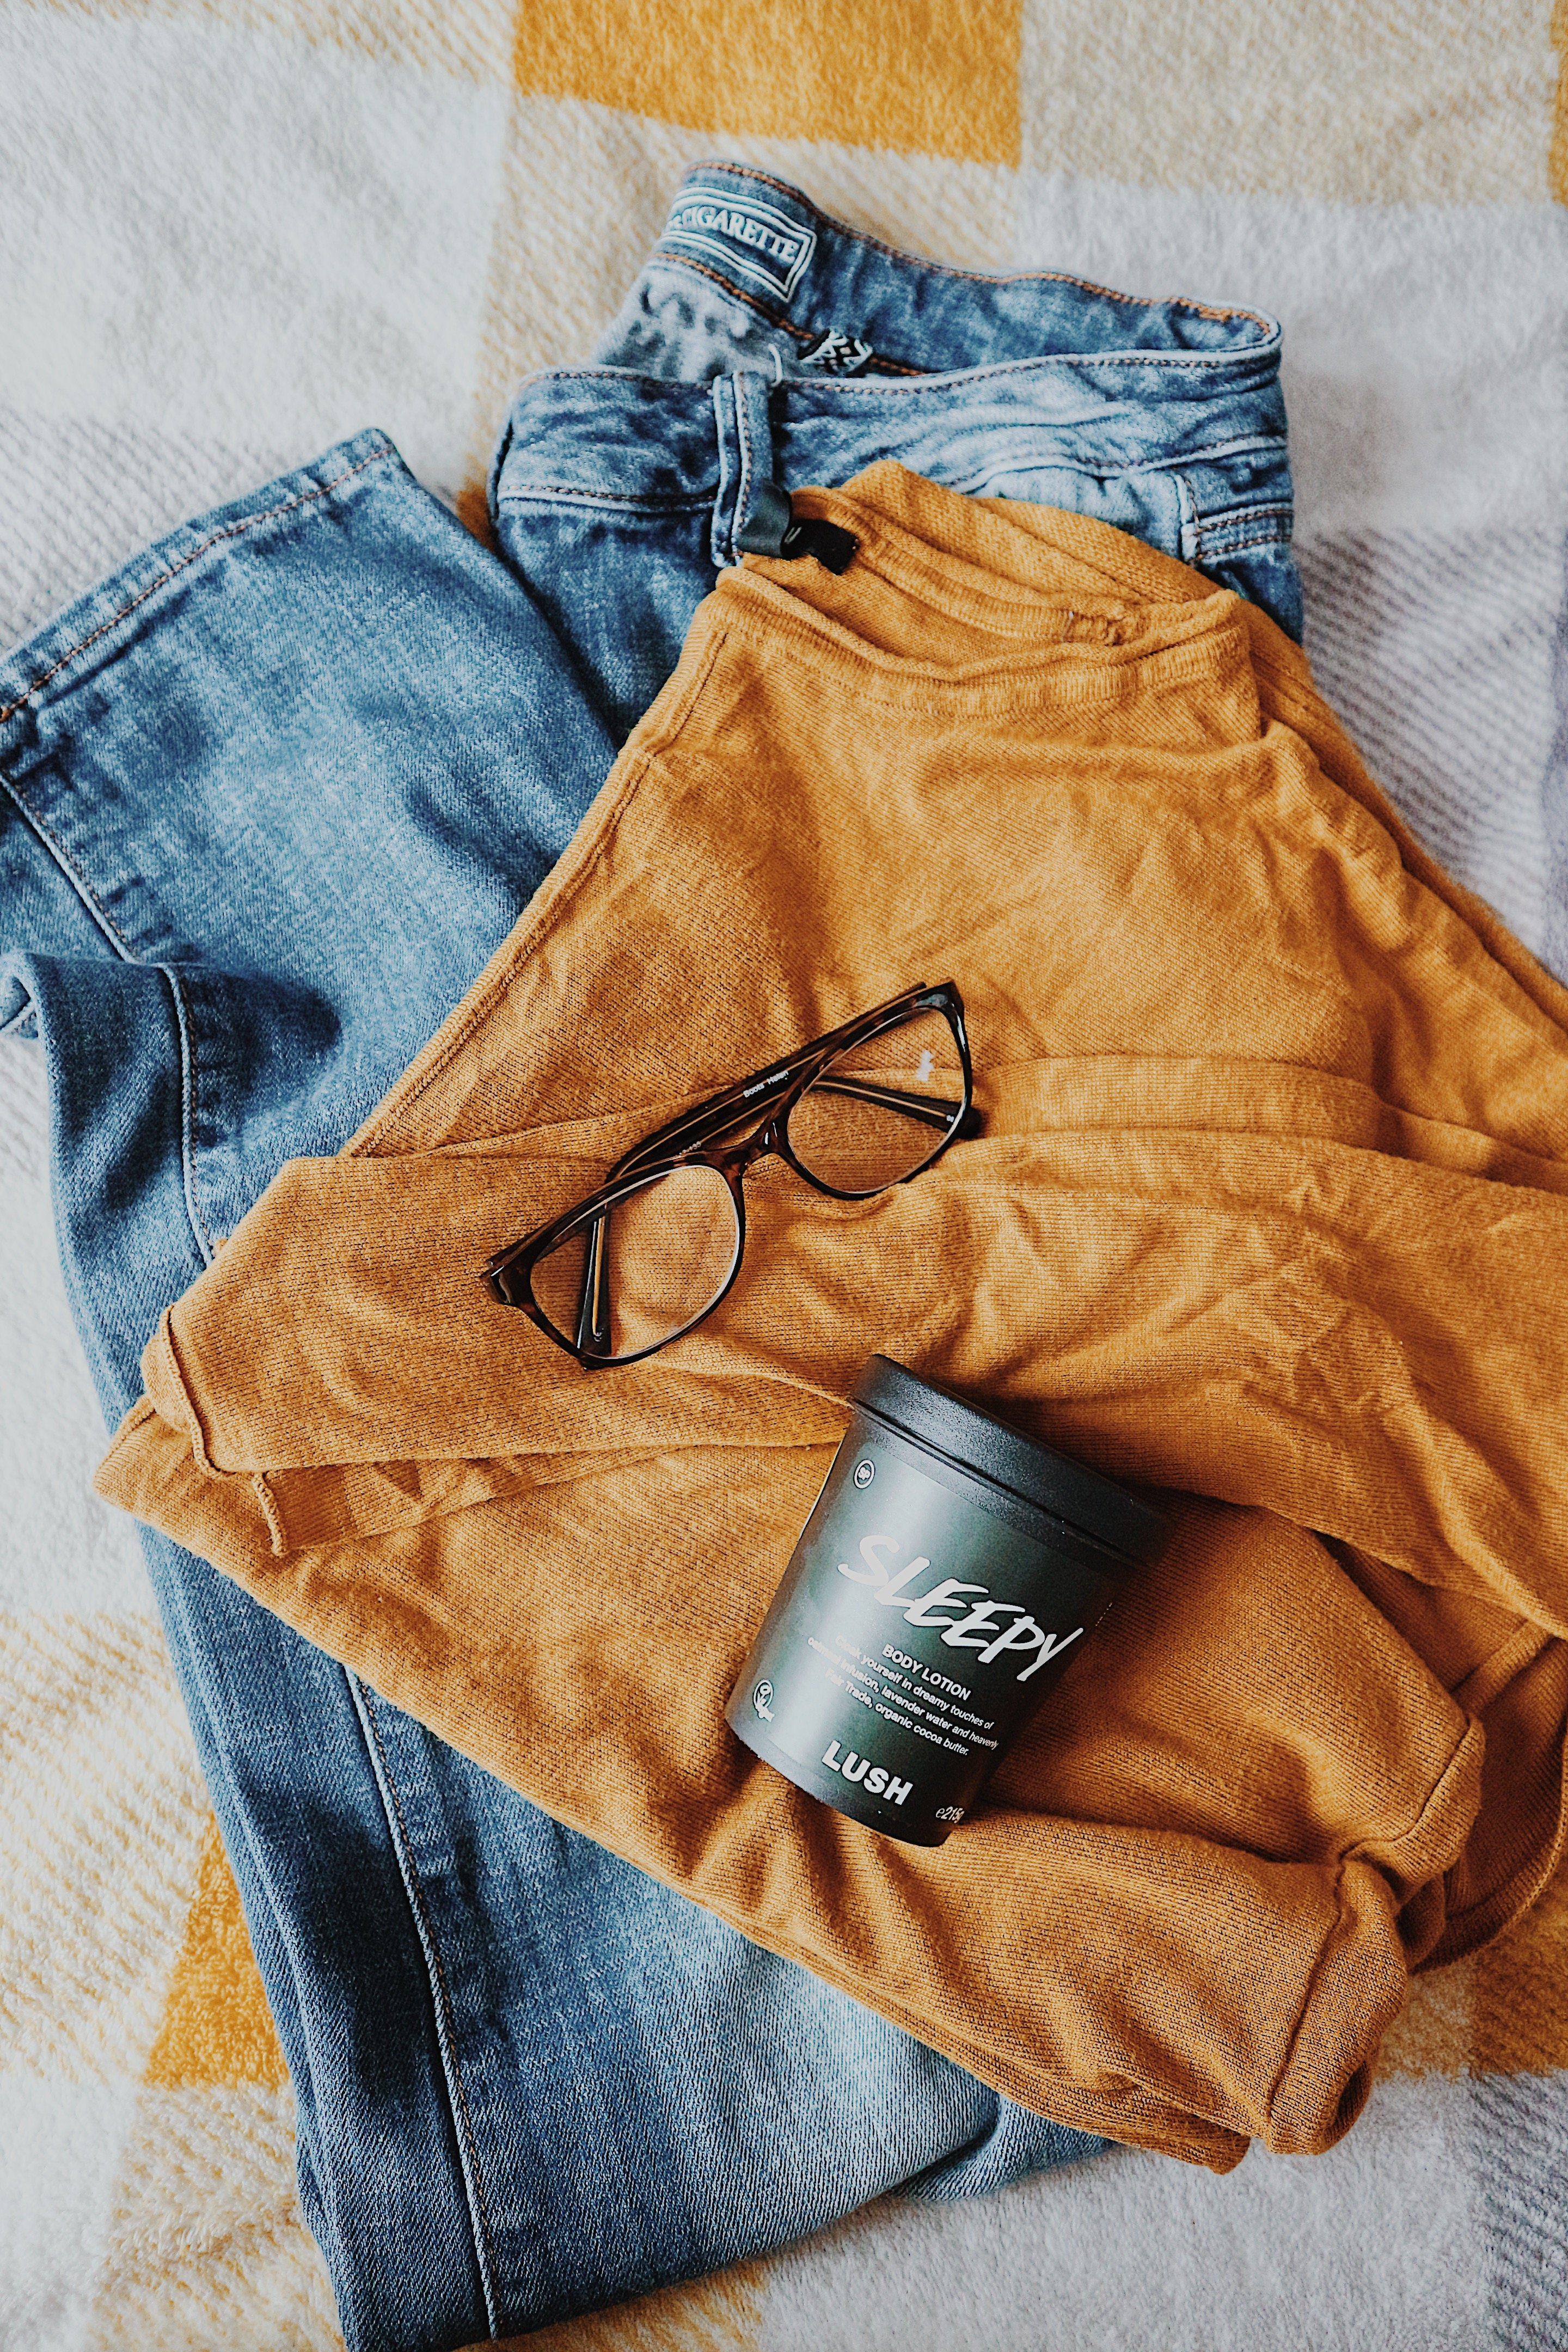 Blue Jeans | Mustard Jumper | Glasses | Lush Sleepy Body Lotion